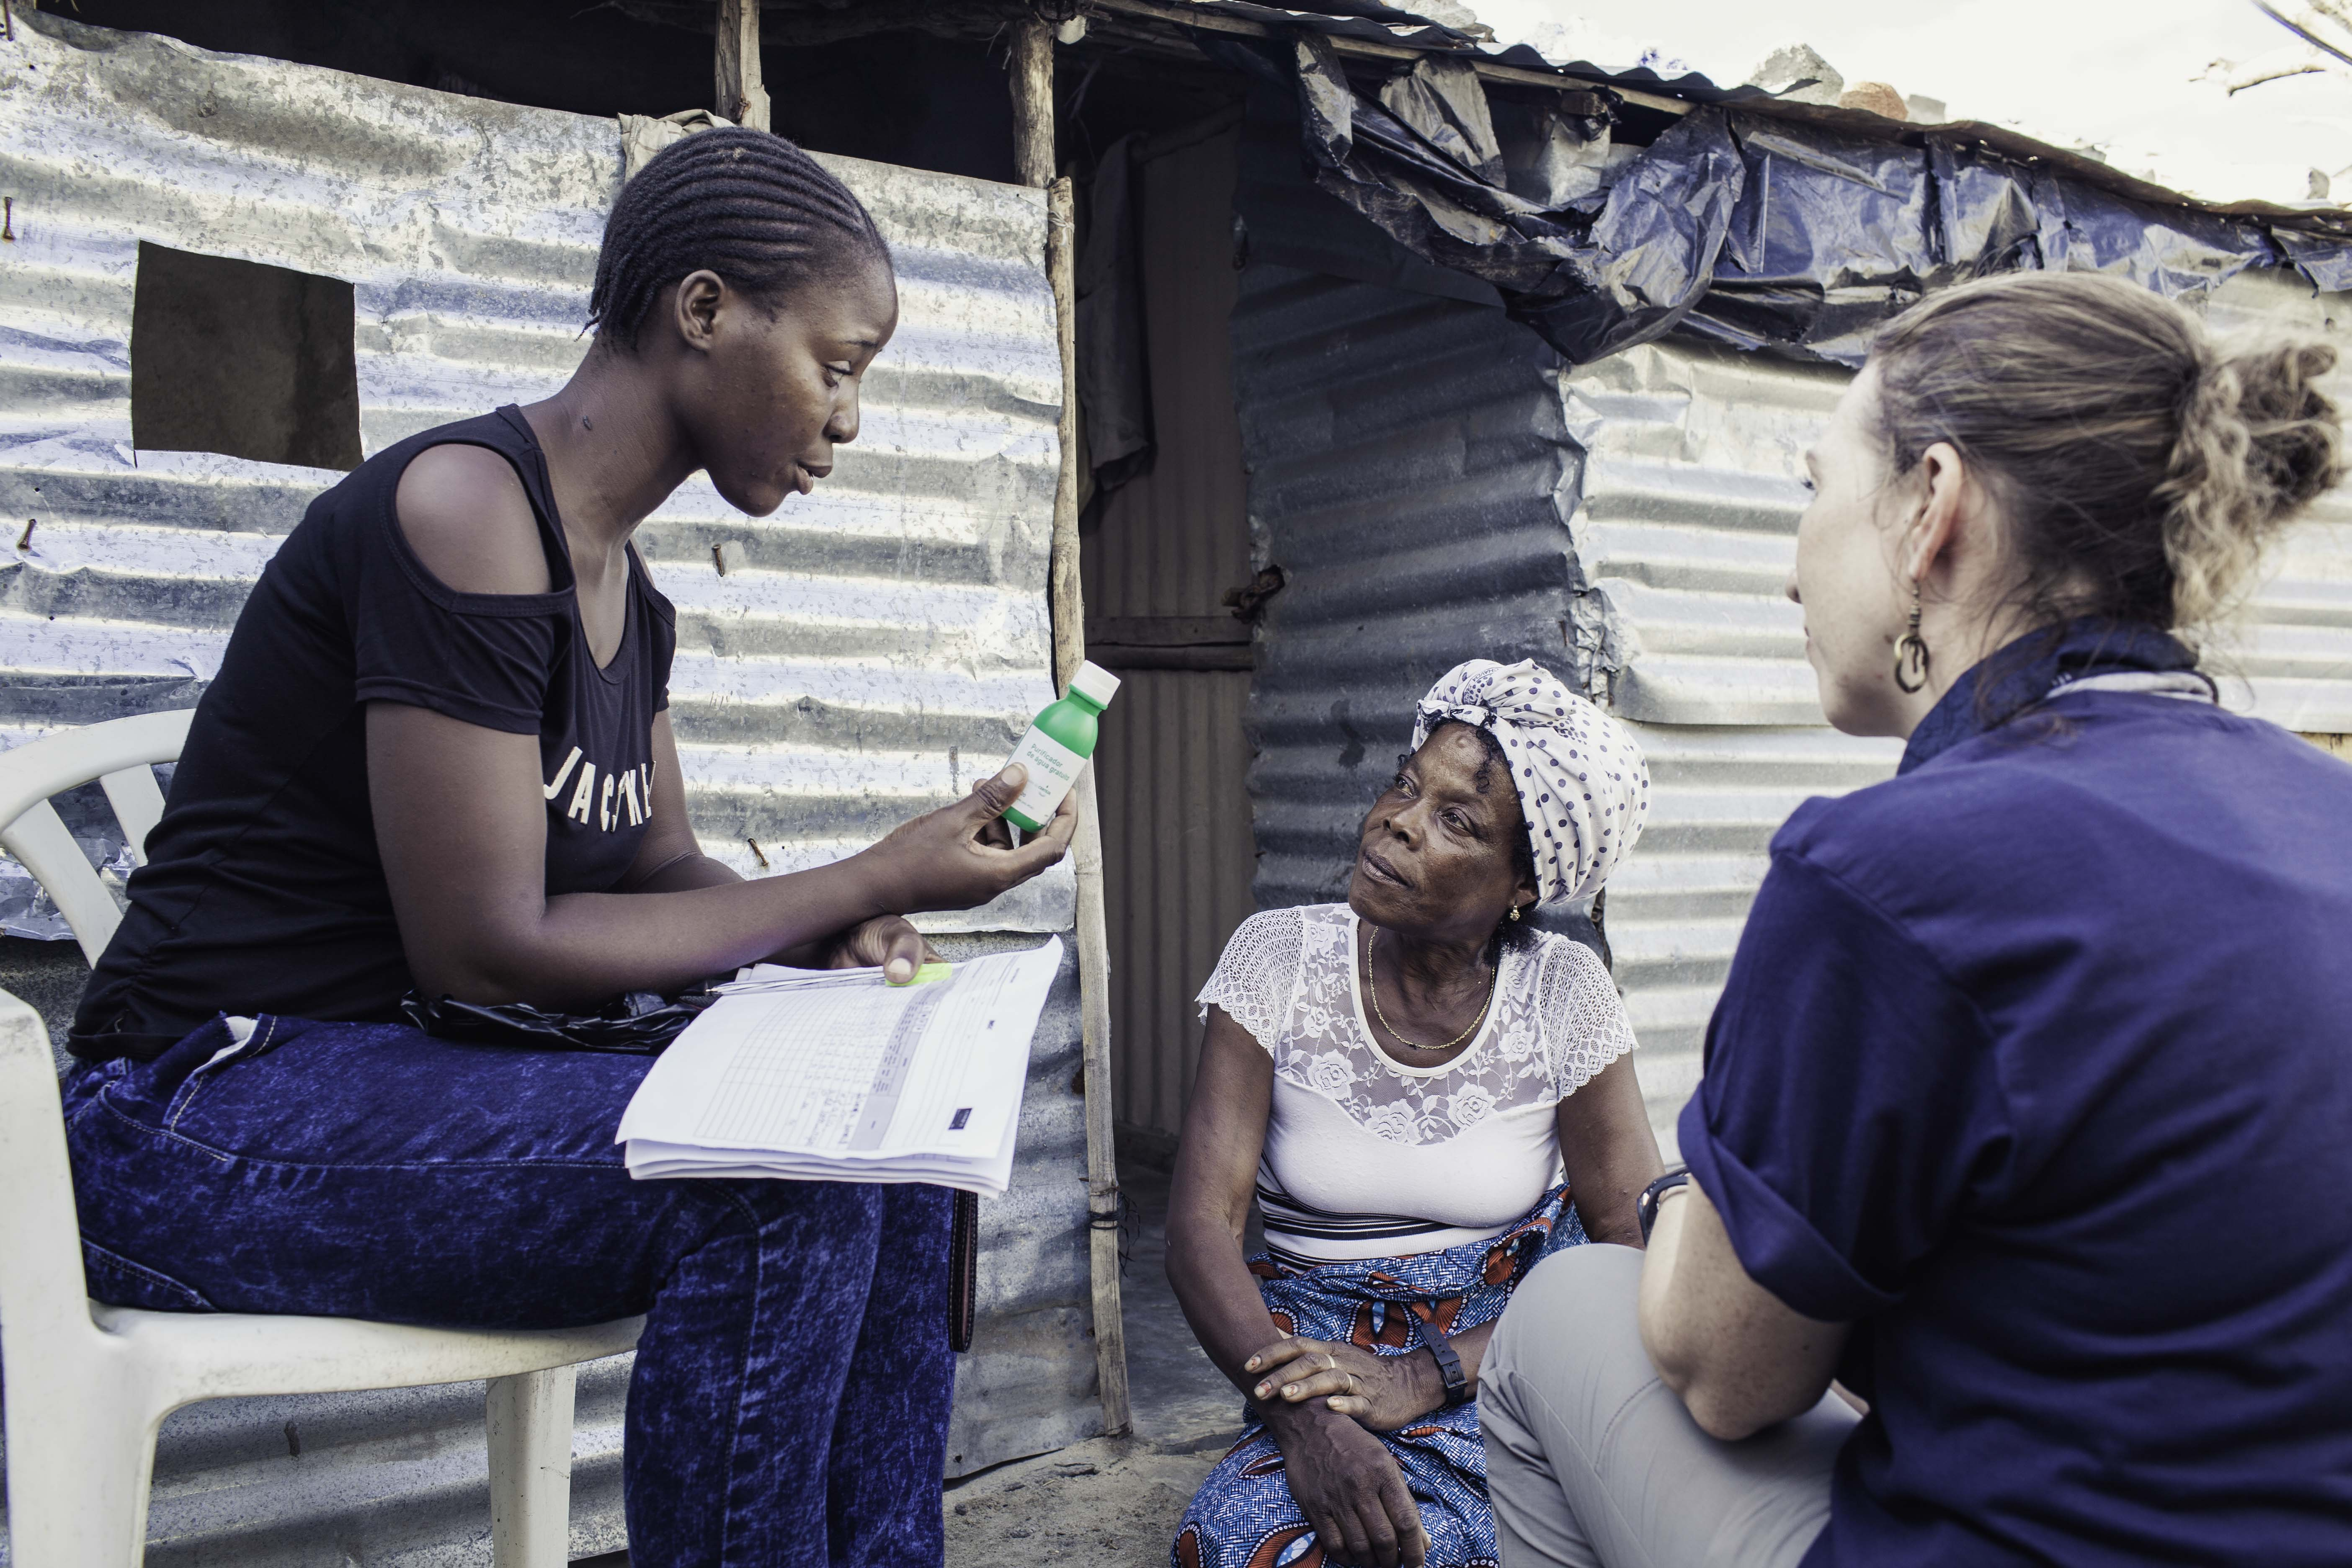 Oxfam is working alongside the Ministry of Health and has already trained 64 'activistas' – community mobilisers – who are working now to give vital health information to local people, including what to do if they suspect family or friends are infected. (Photo: Micas Mondlane / Oxfam Novib)